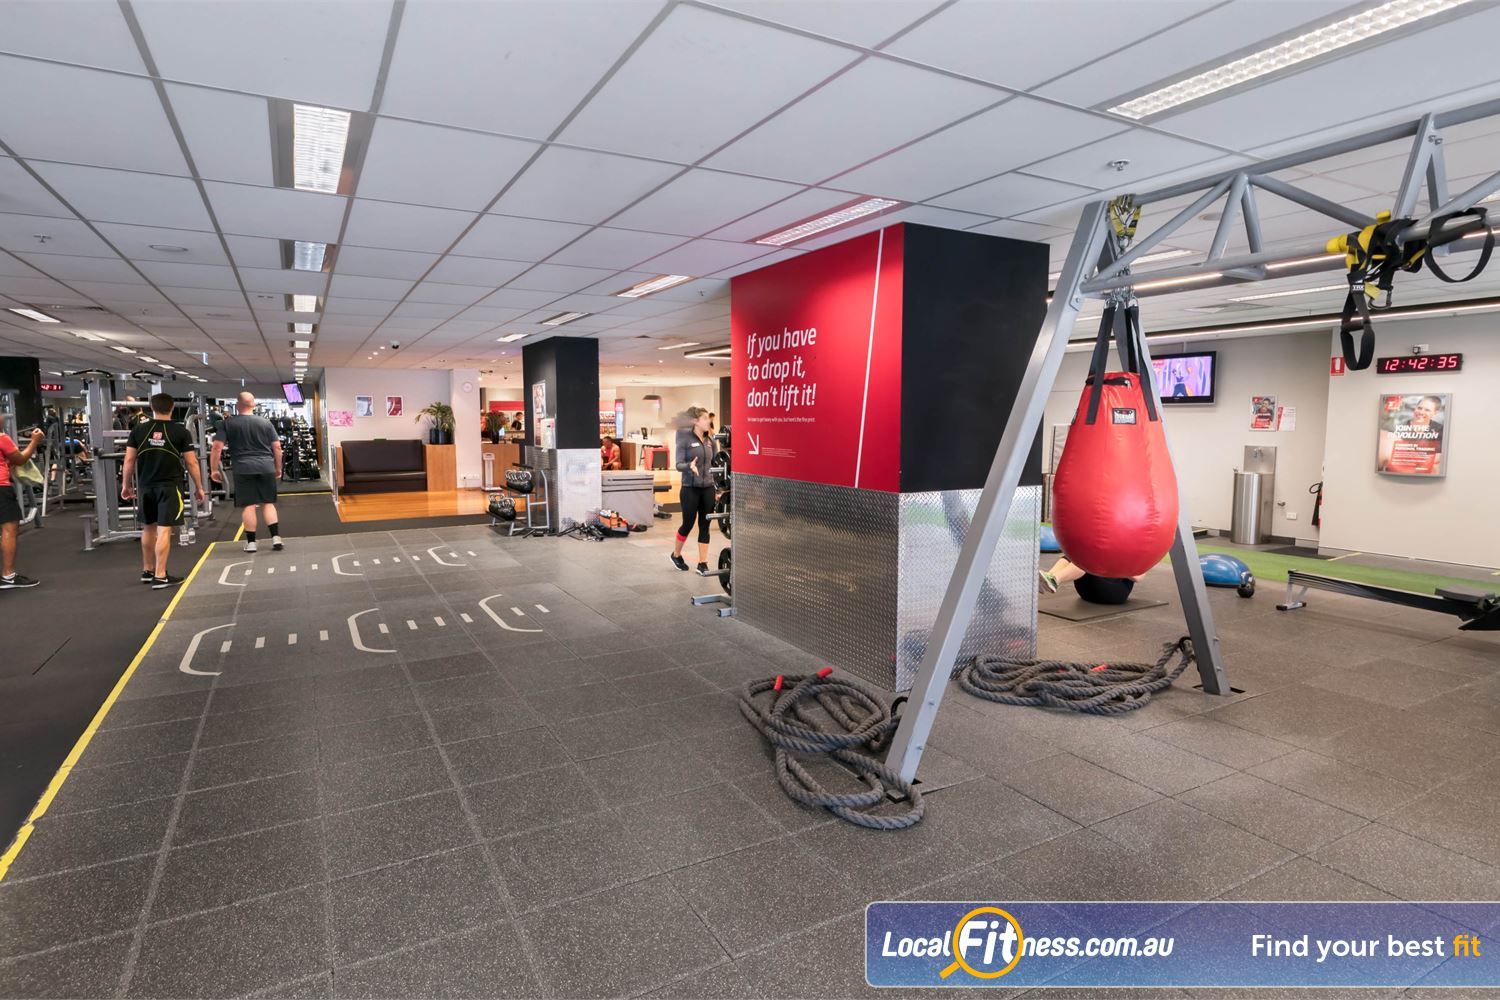 Fitness First Platinum Darlinghurst Our fitness community lovesFunctional Movement training in our freestyle training zone.